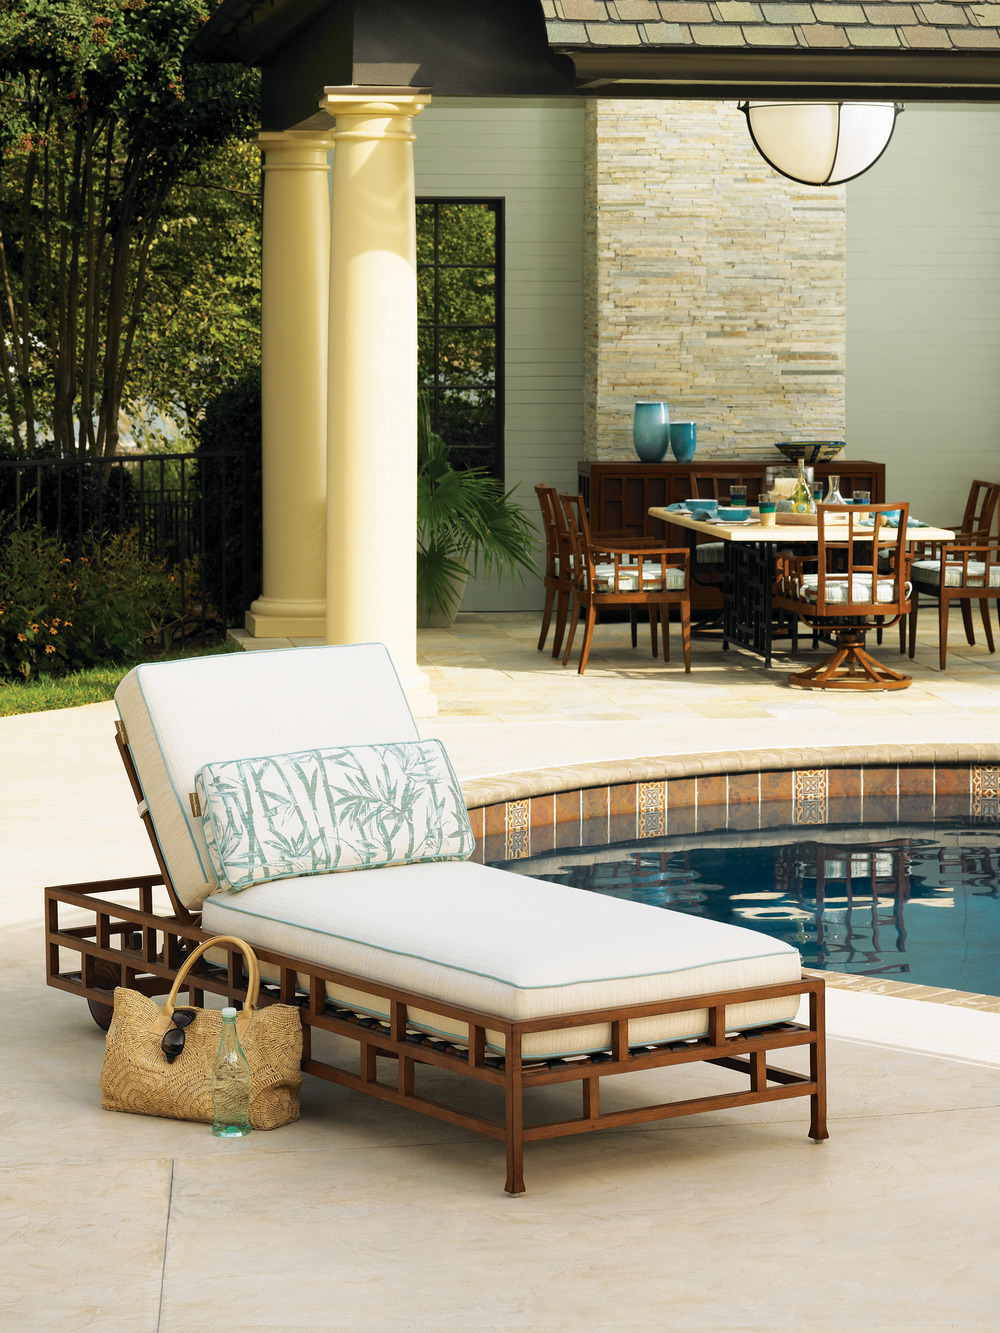 Tommy Bahama Ocean Club Resort Chaise, $3,495 At Paramount Furniture, (604) 273-0155  paramountfurniture.ca